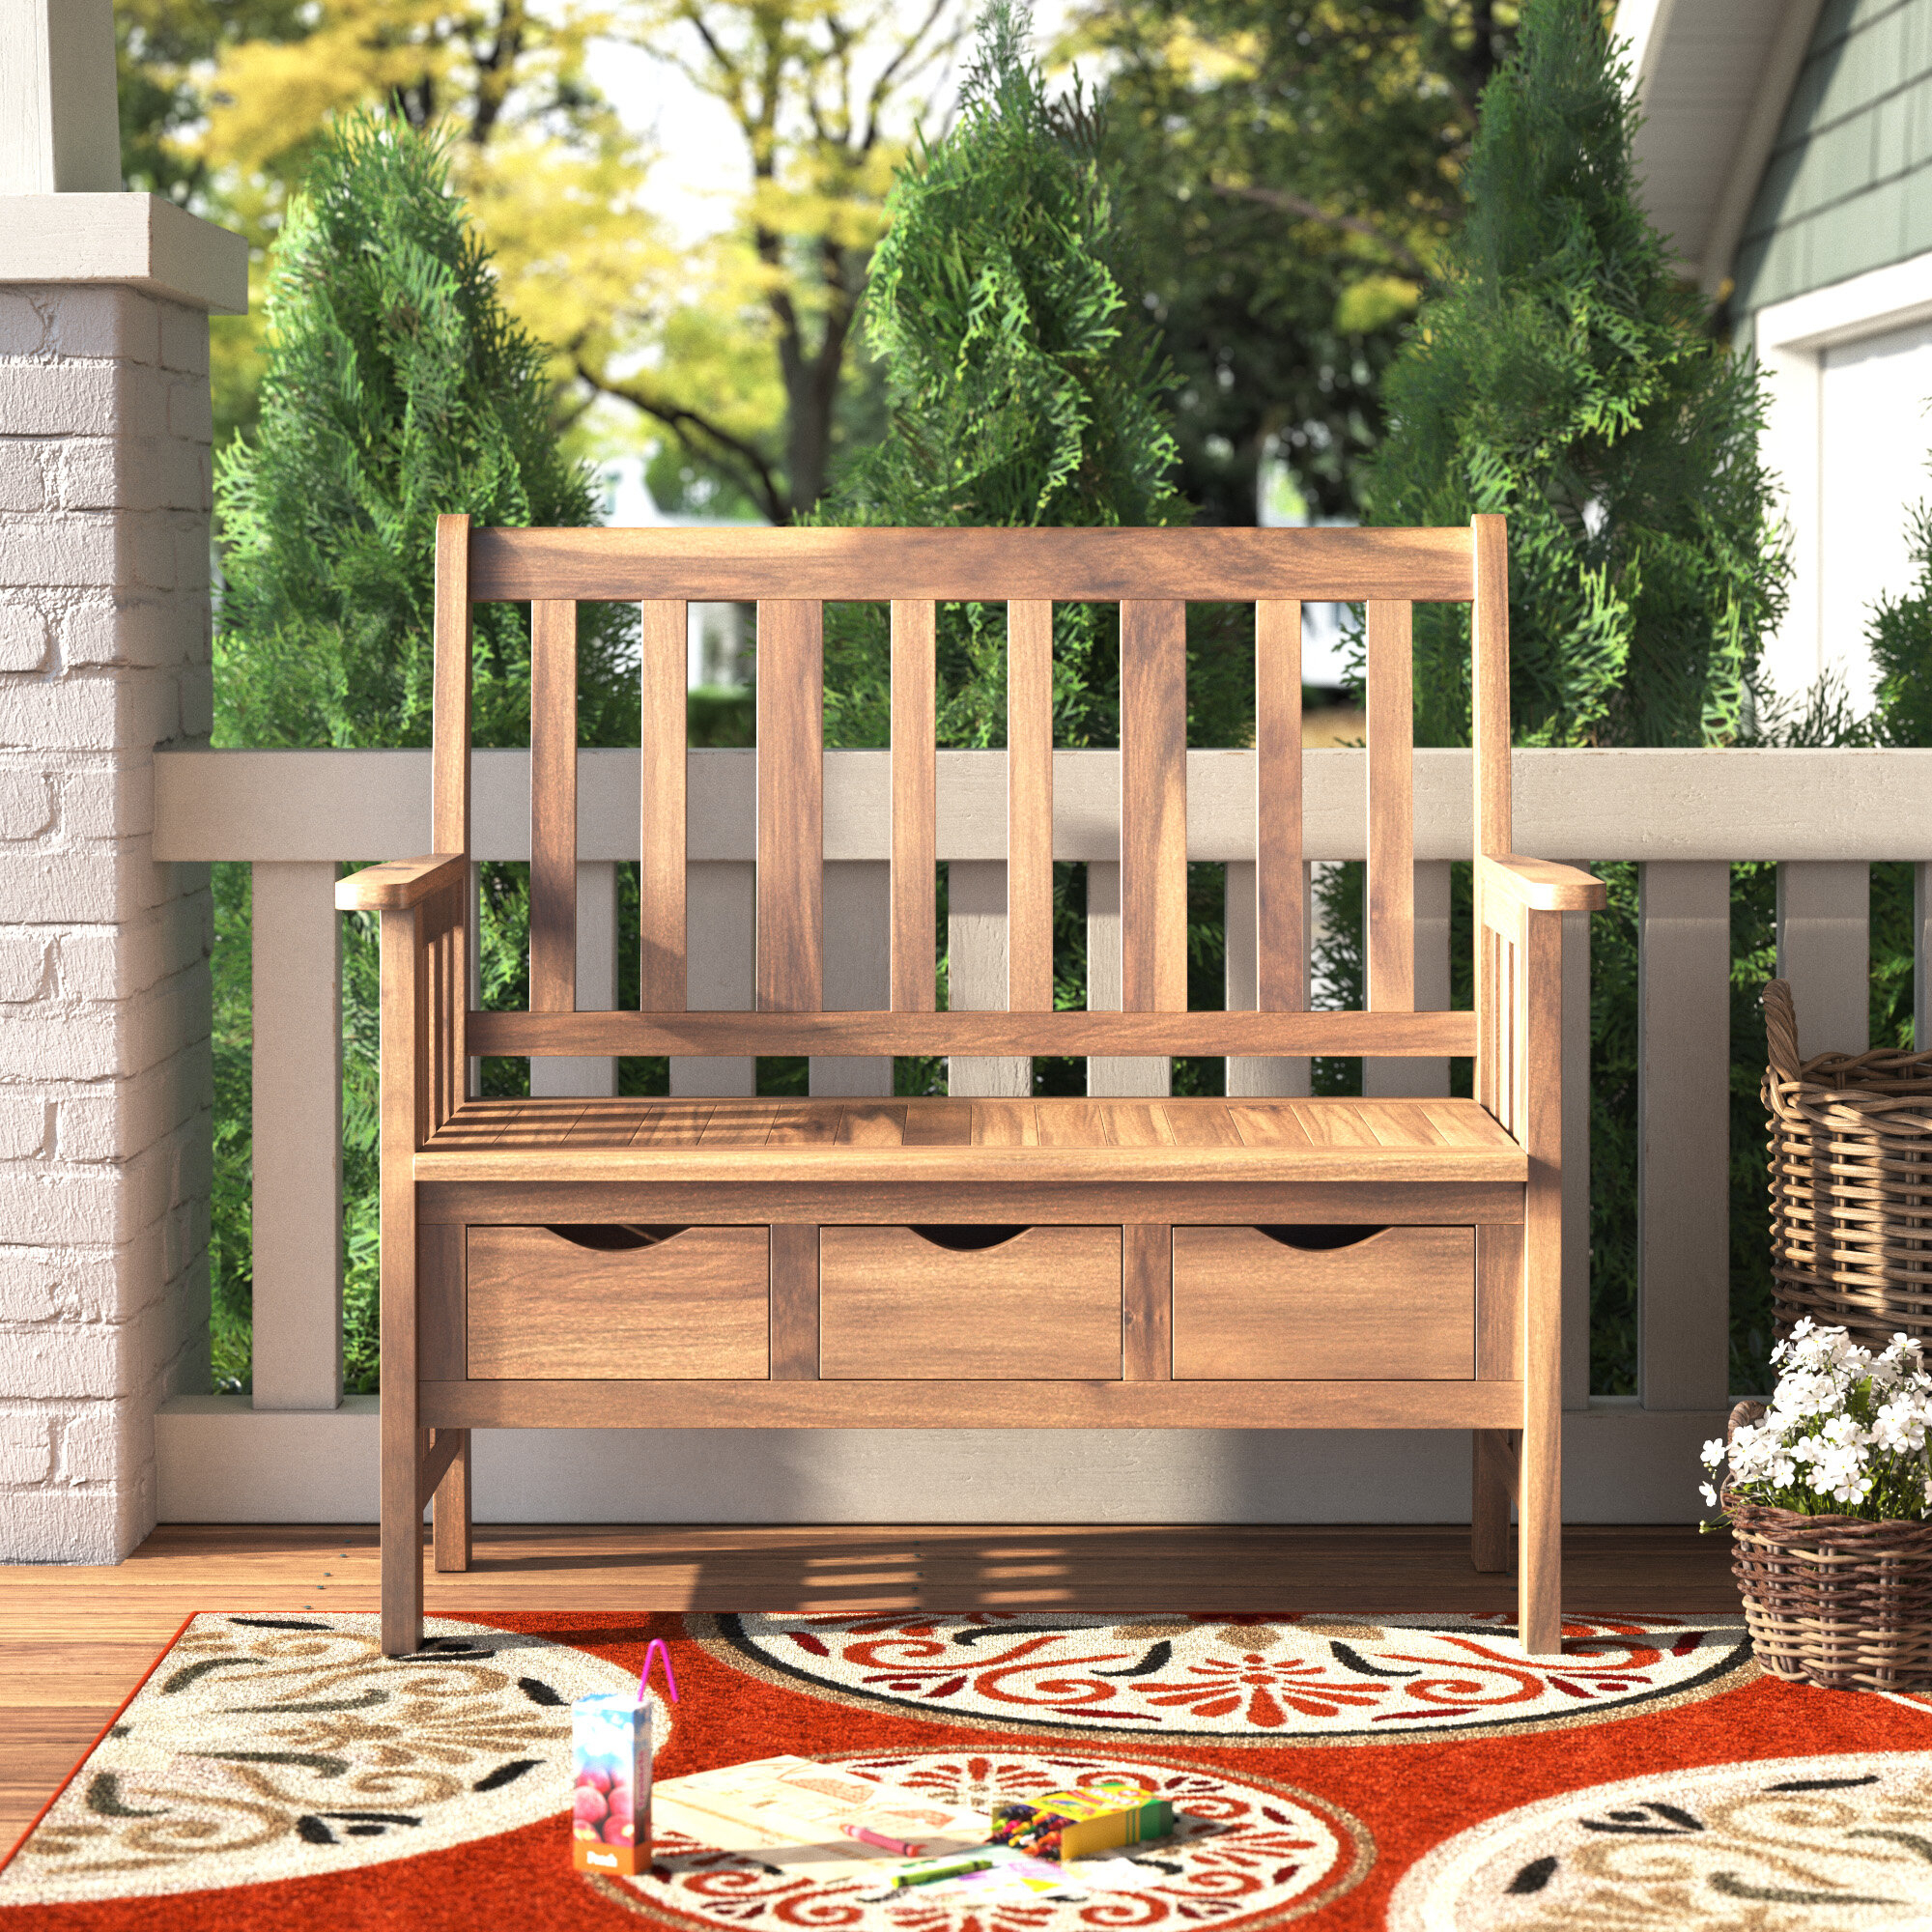 Outdoor Storage Benches | Wayfair Throughout Skoog Chevron Wooden Storage Benches (View 12 of 25)